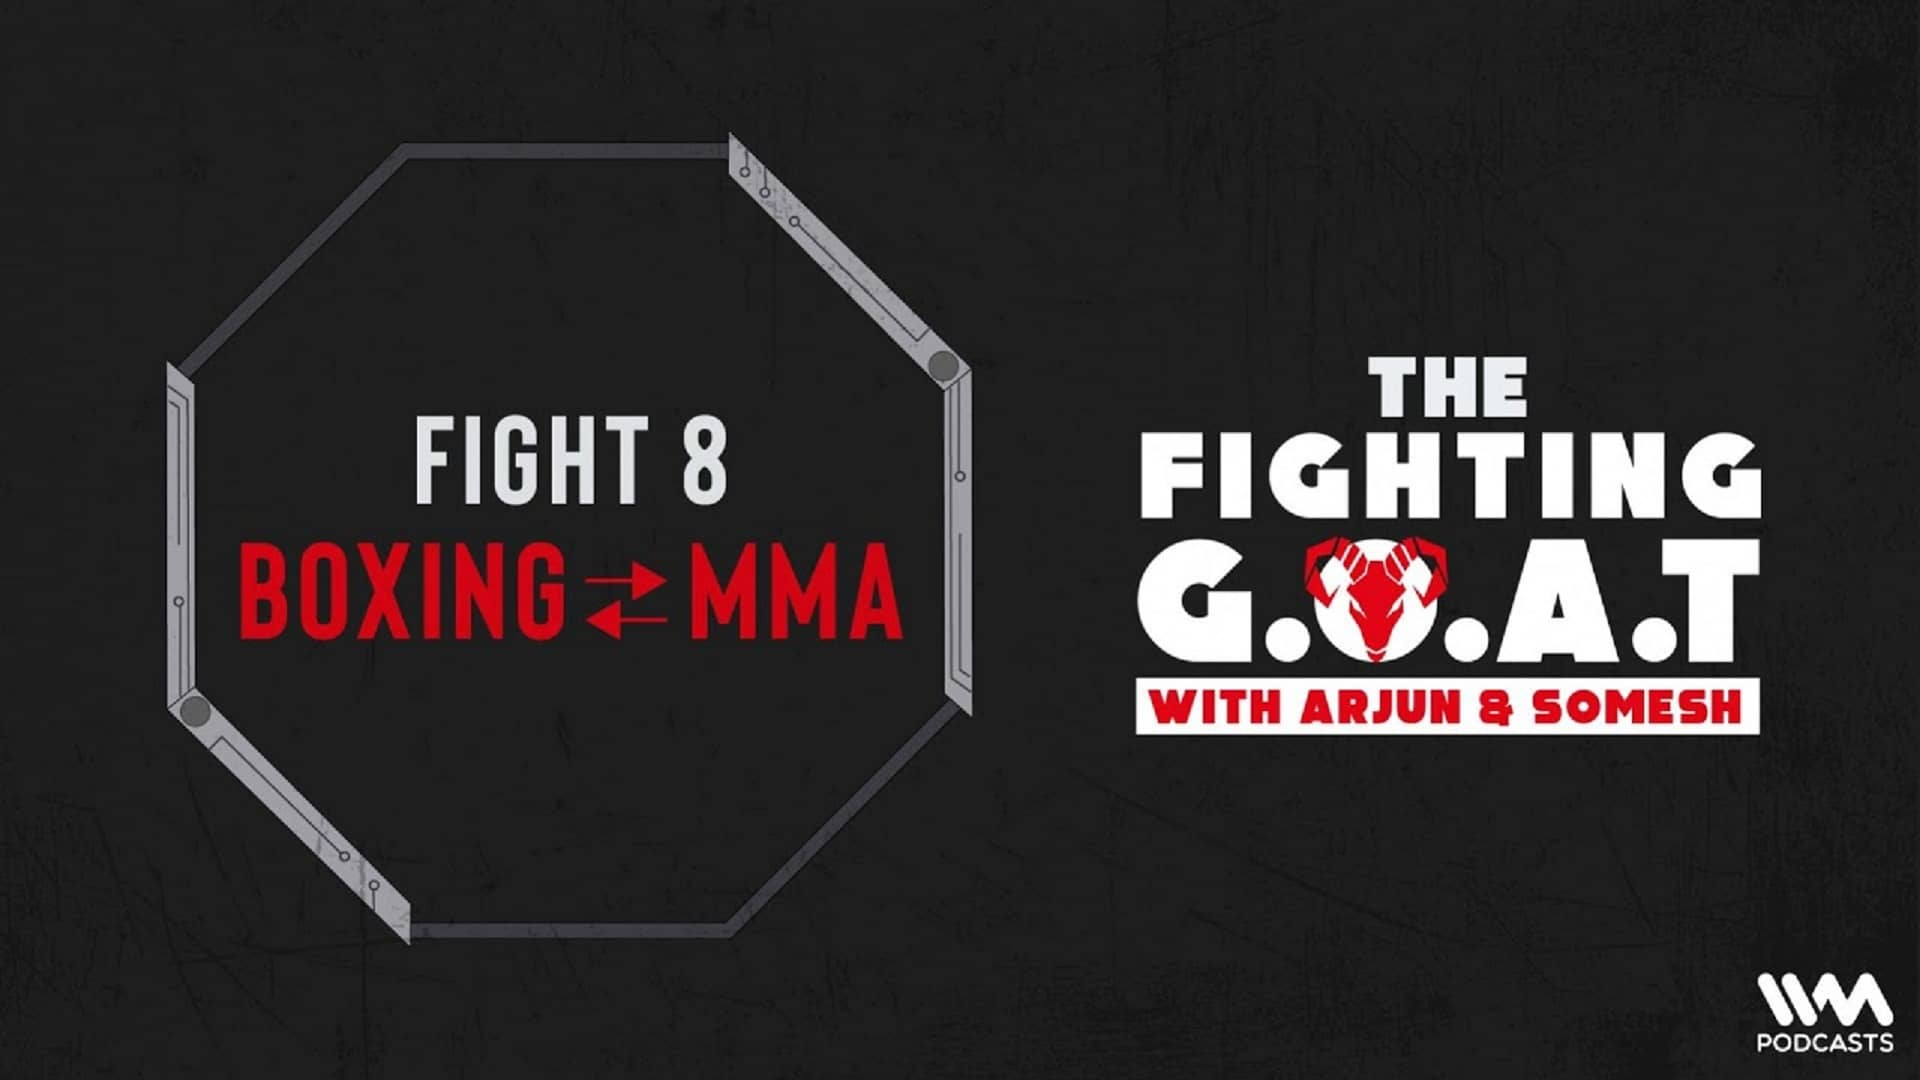 Fighting-GOAT-Episode-MMA-Boxing